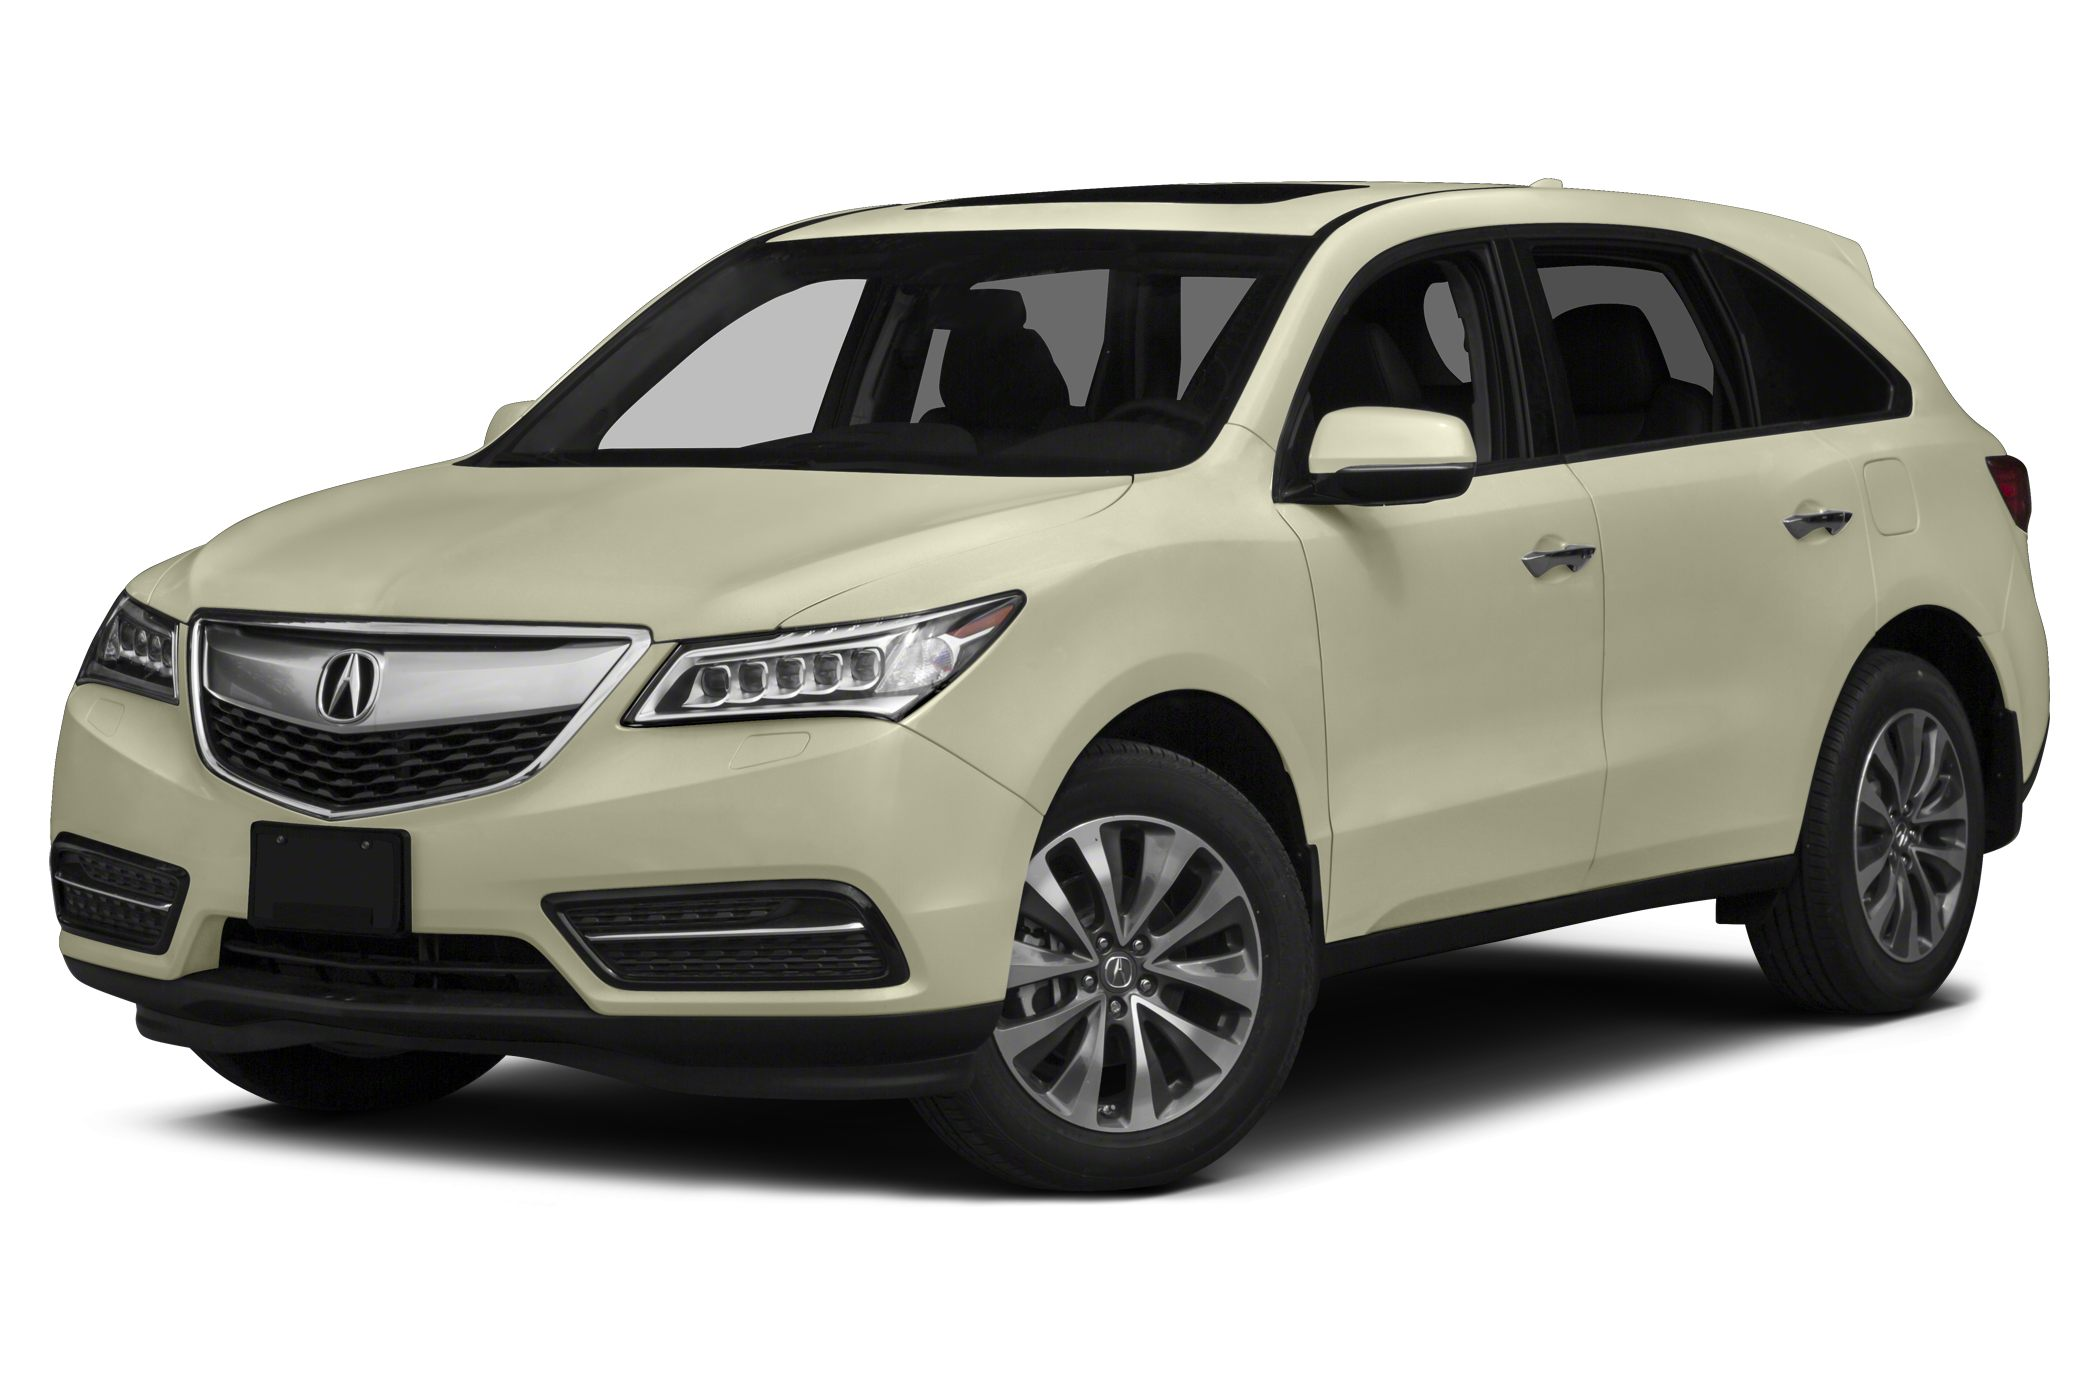 2014 Acura MDX 35 Technology Acura Certified - Clean Carfax - One Owner - Tech Package - Navigati